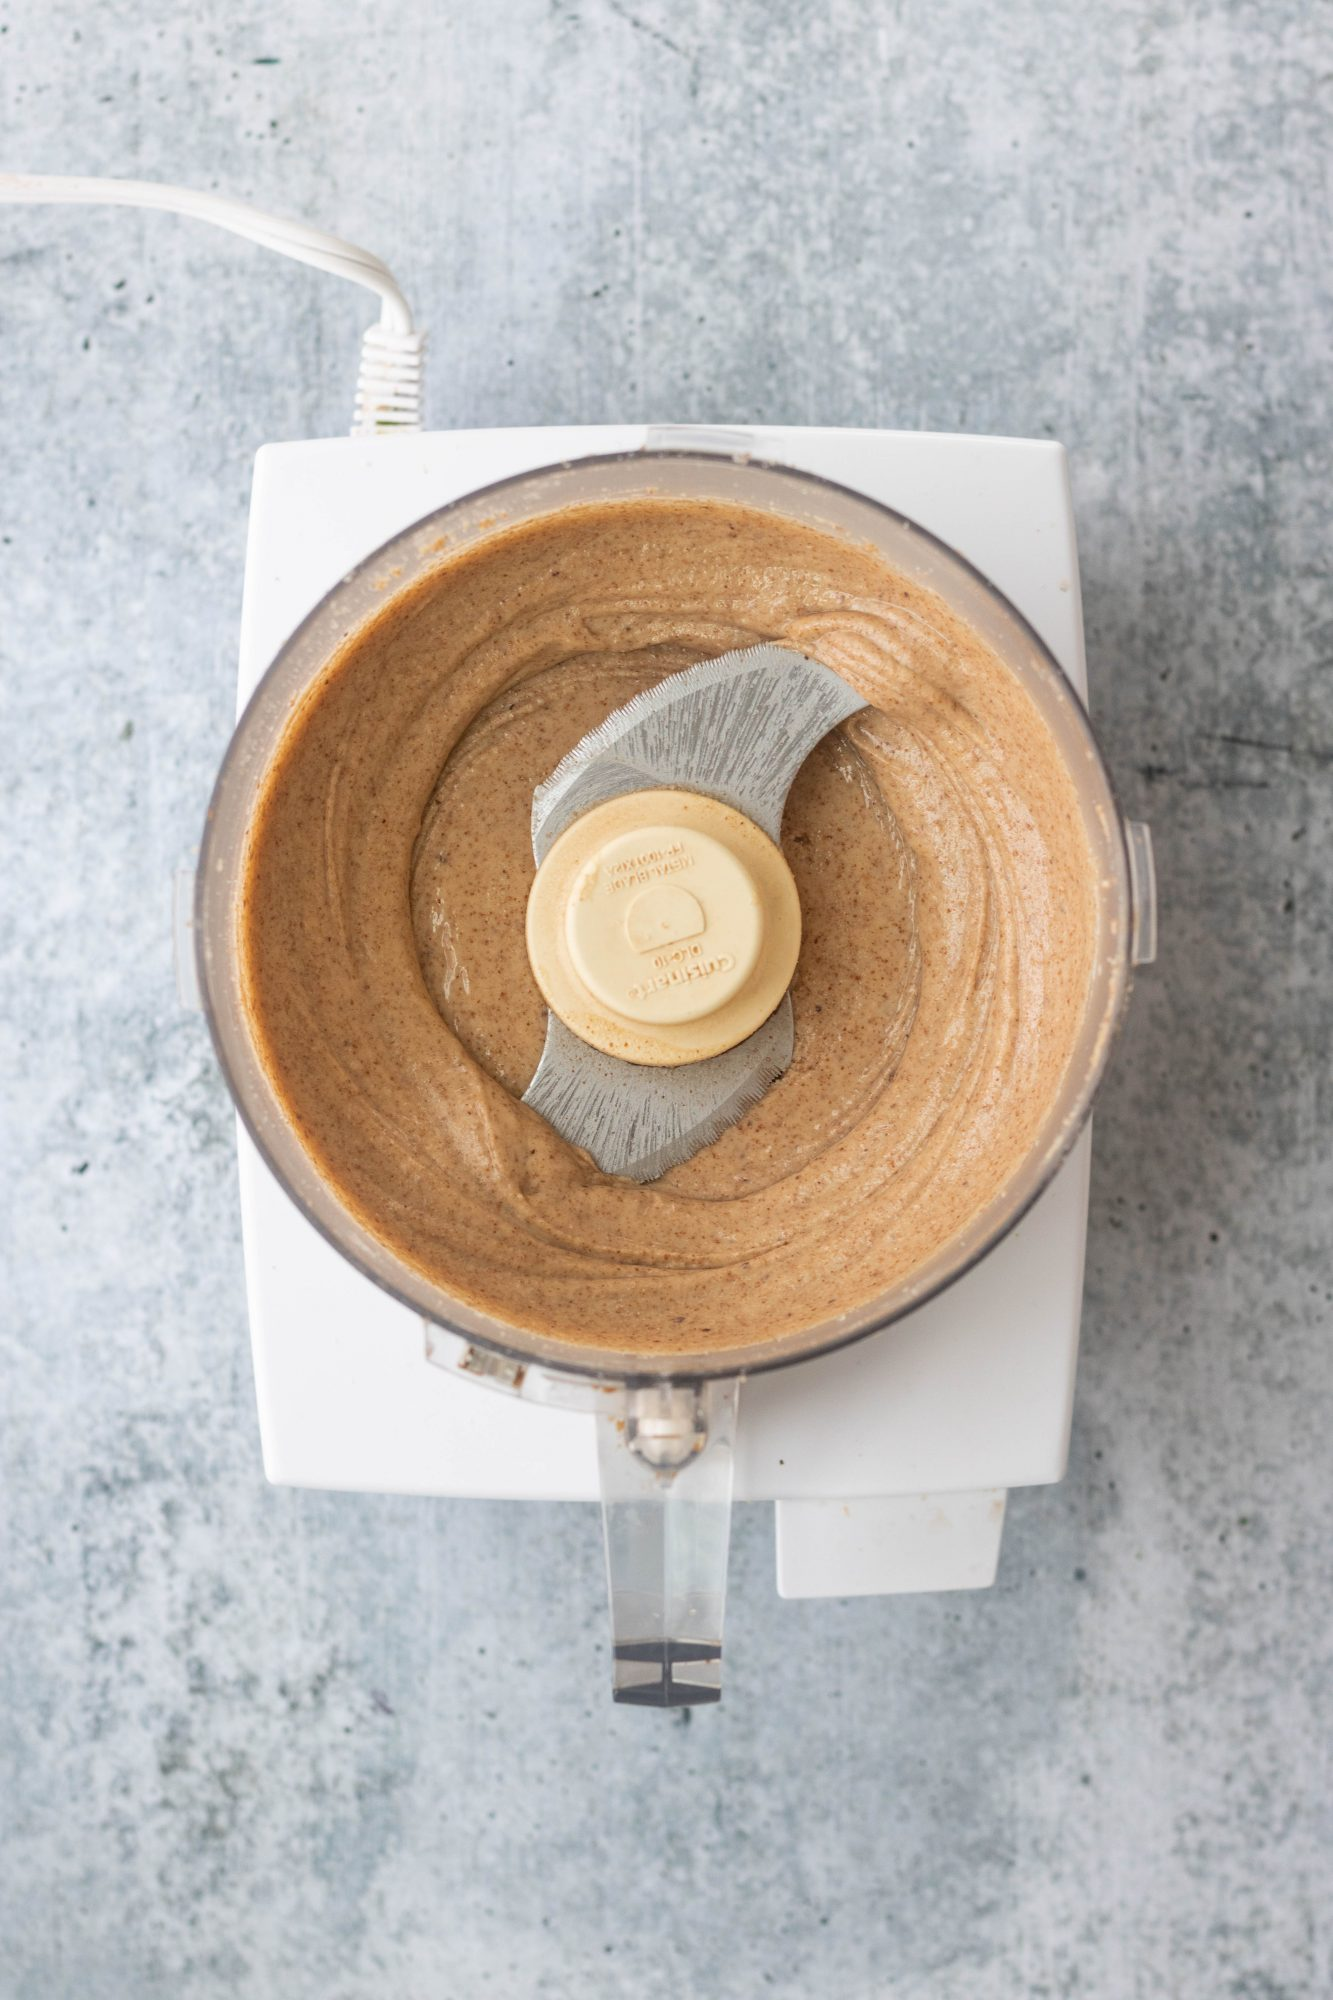 Homemade Almond Butter in Food Processor